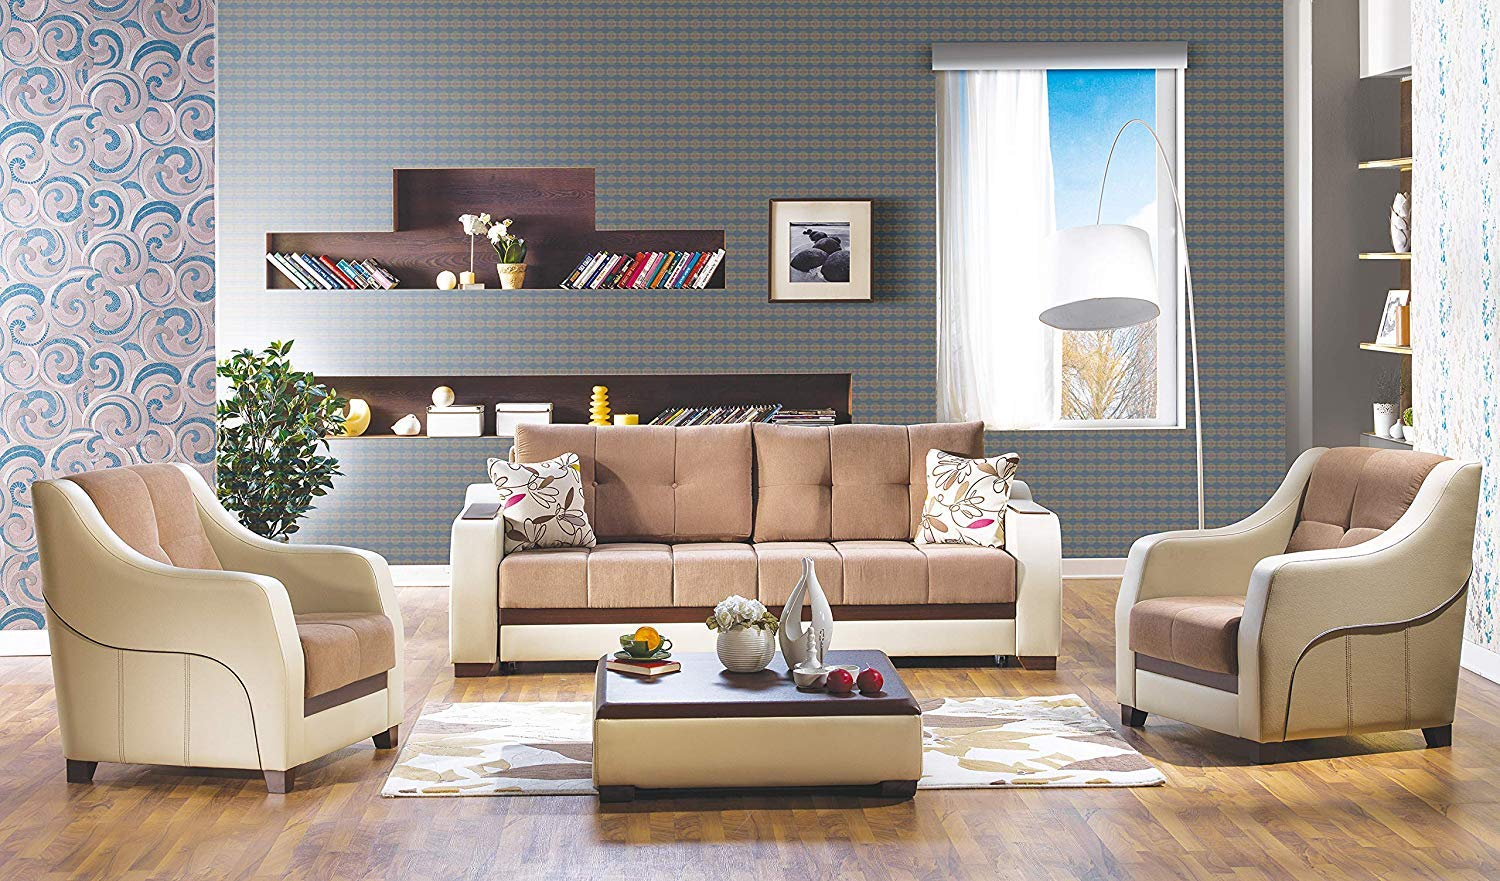 House With Ideal Sofa